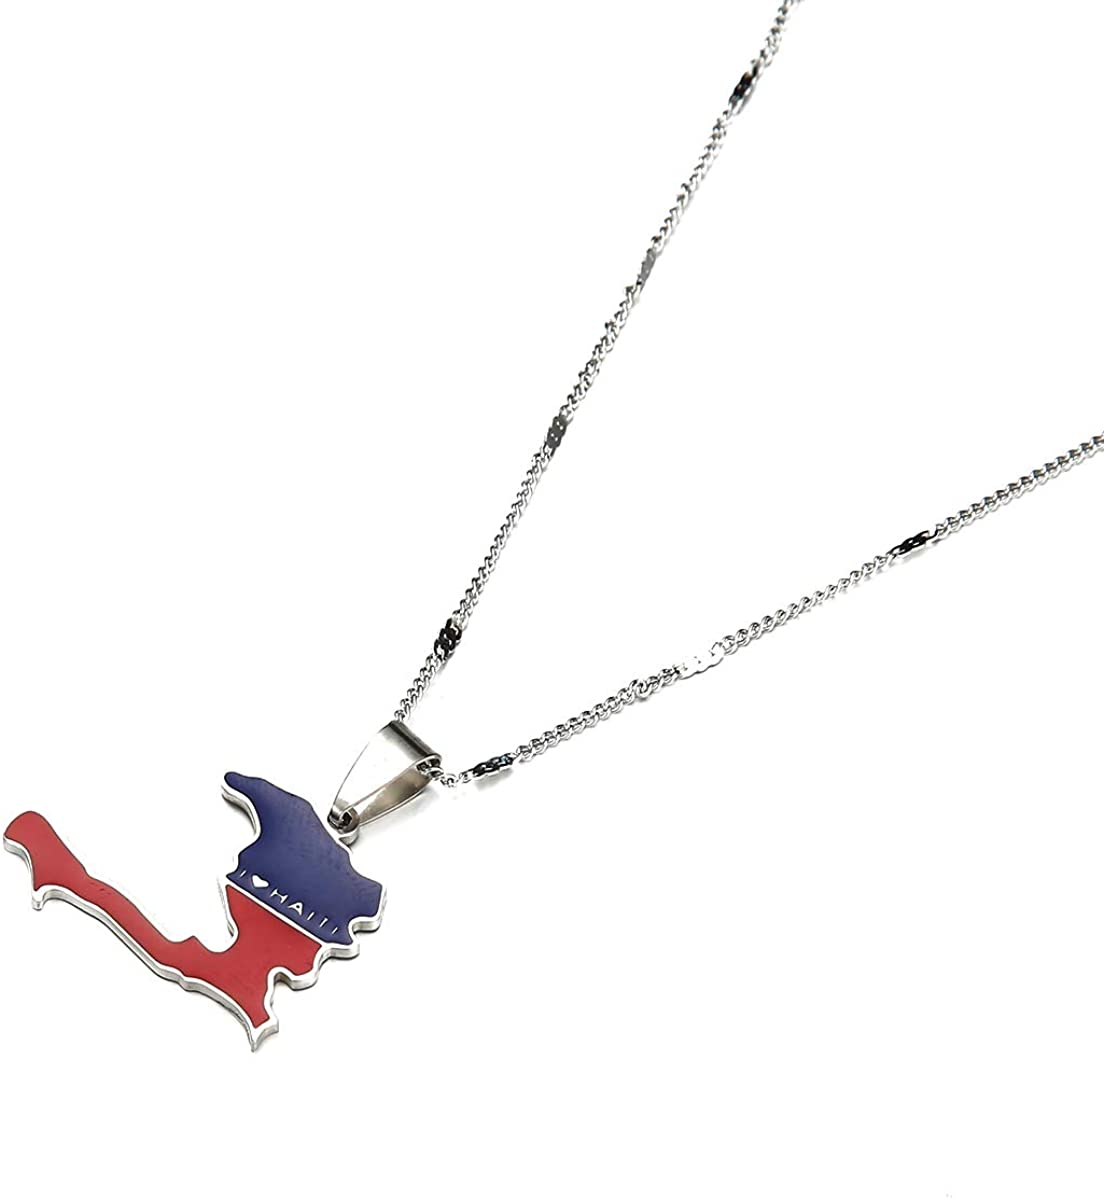 Stainless Steel Enamel The Republic of Haiti Map Pendant Necklace Trendy Port-AU-Prince Map Chain Jewelry